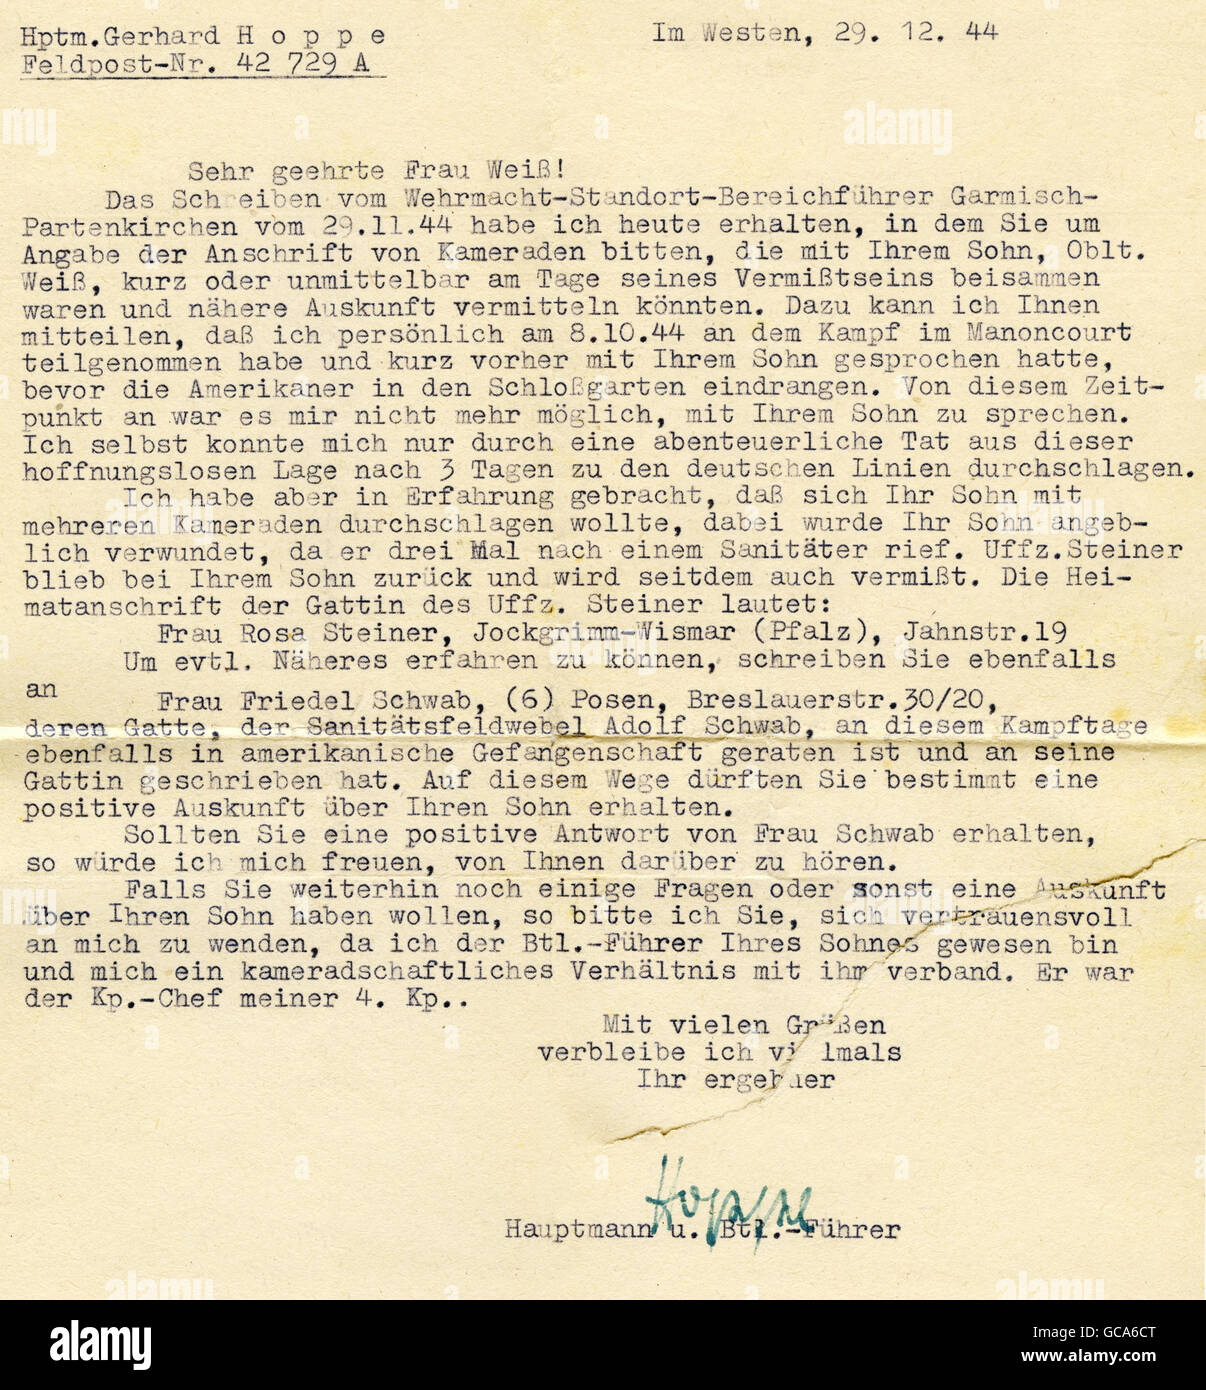 events, Second World War / WWII, Germany, army postal service letter, from Hauptmann Hoppe to Ms. Grete Weiss, 29.12.1944, - Stock Image